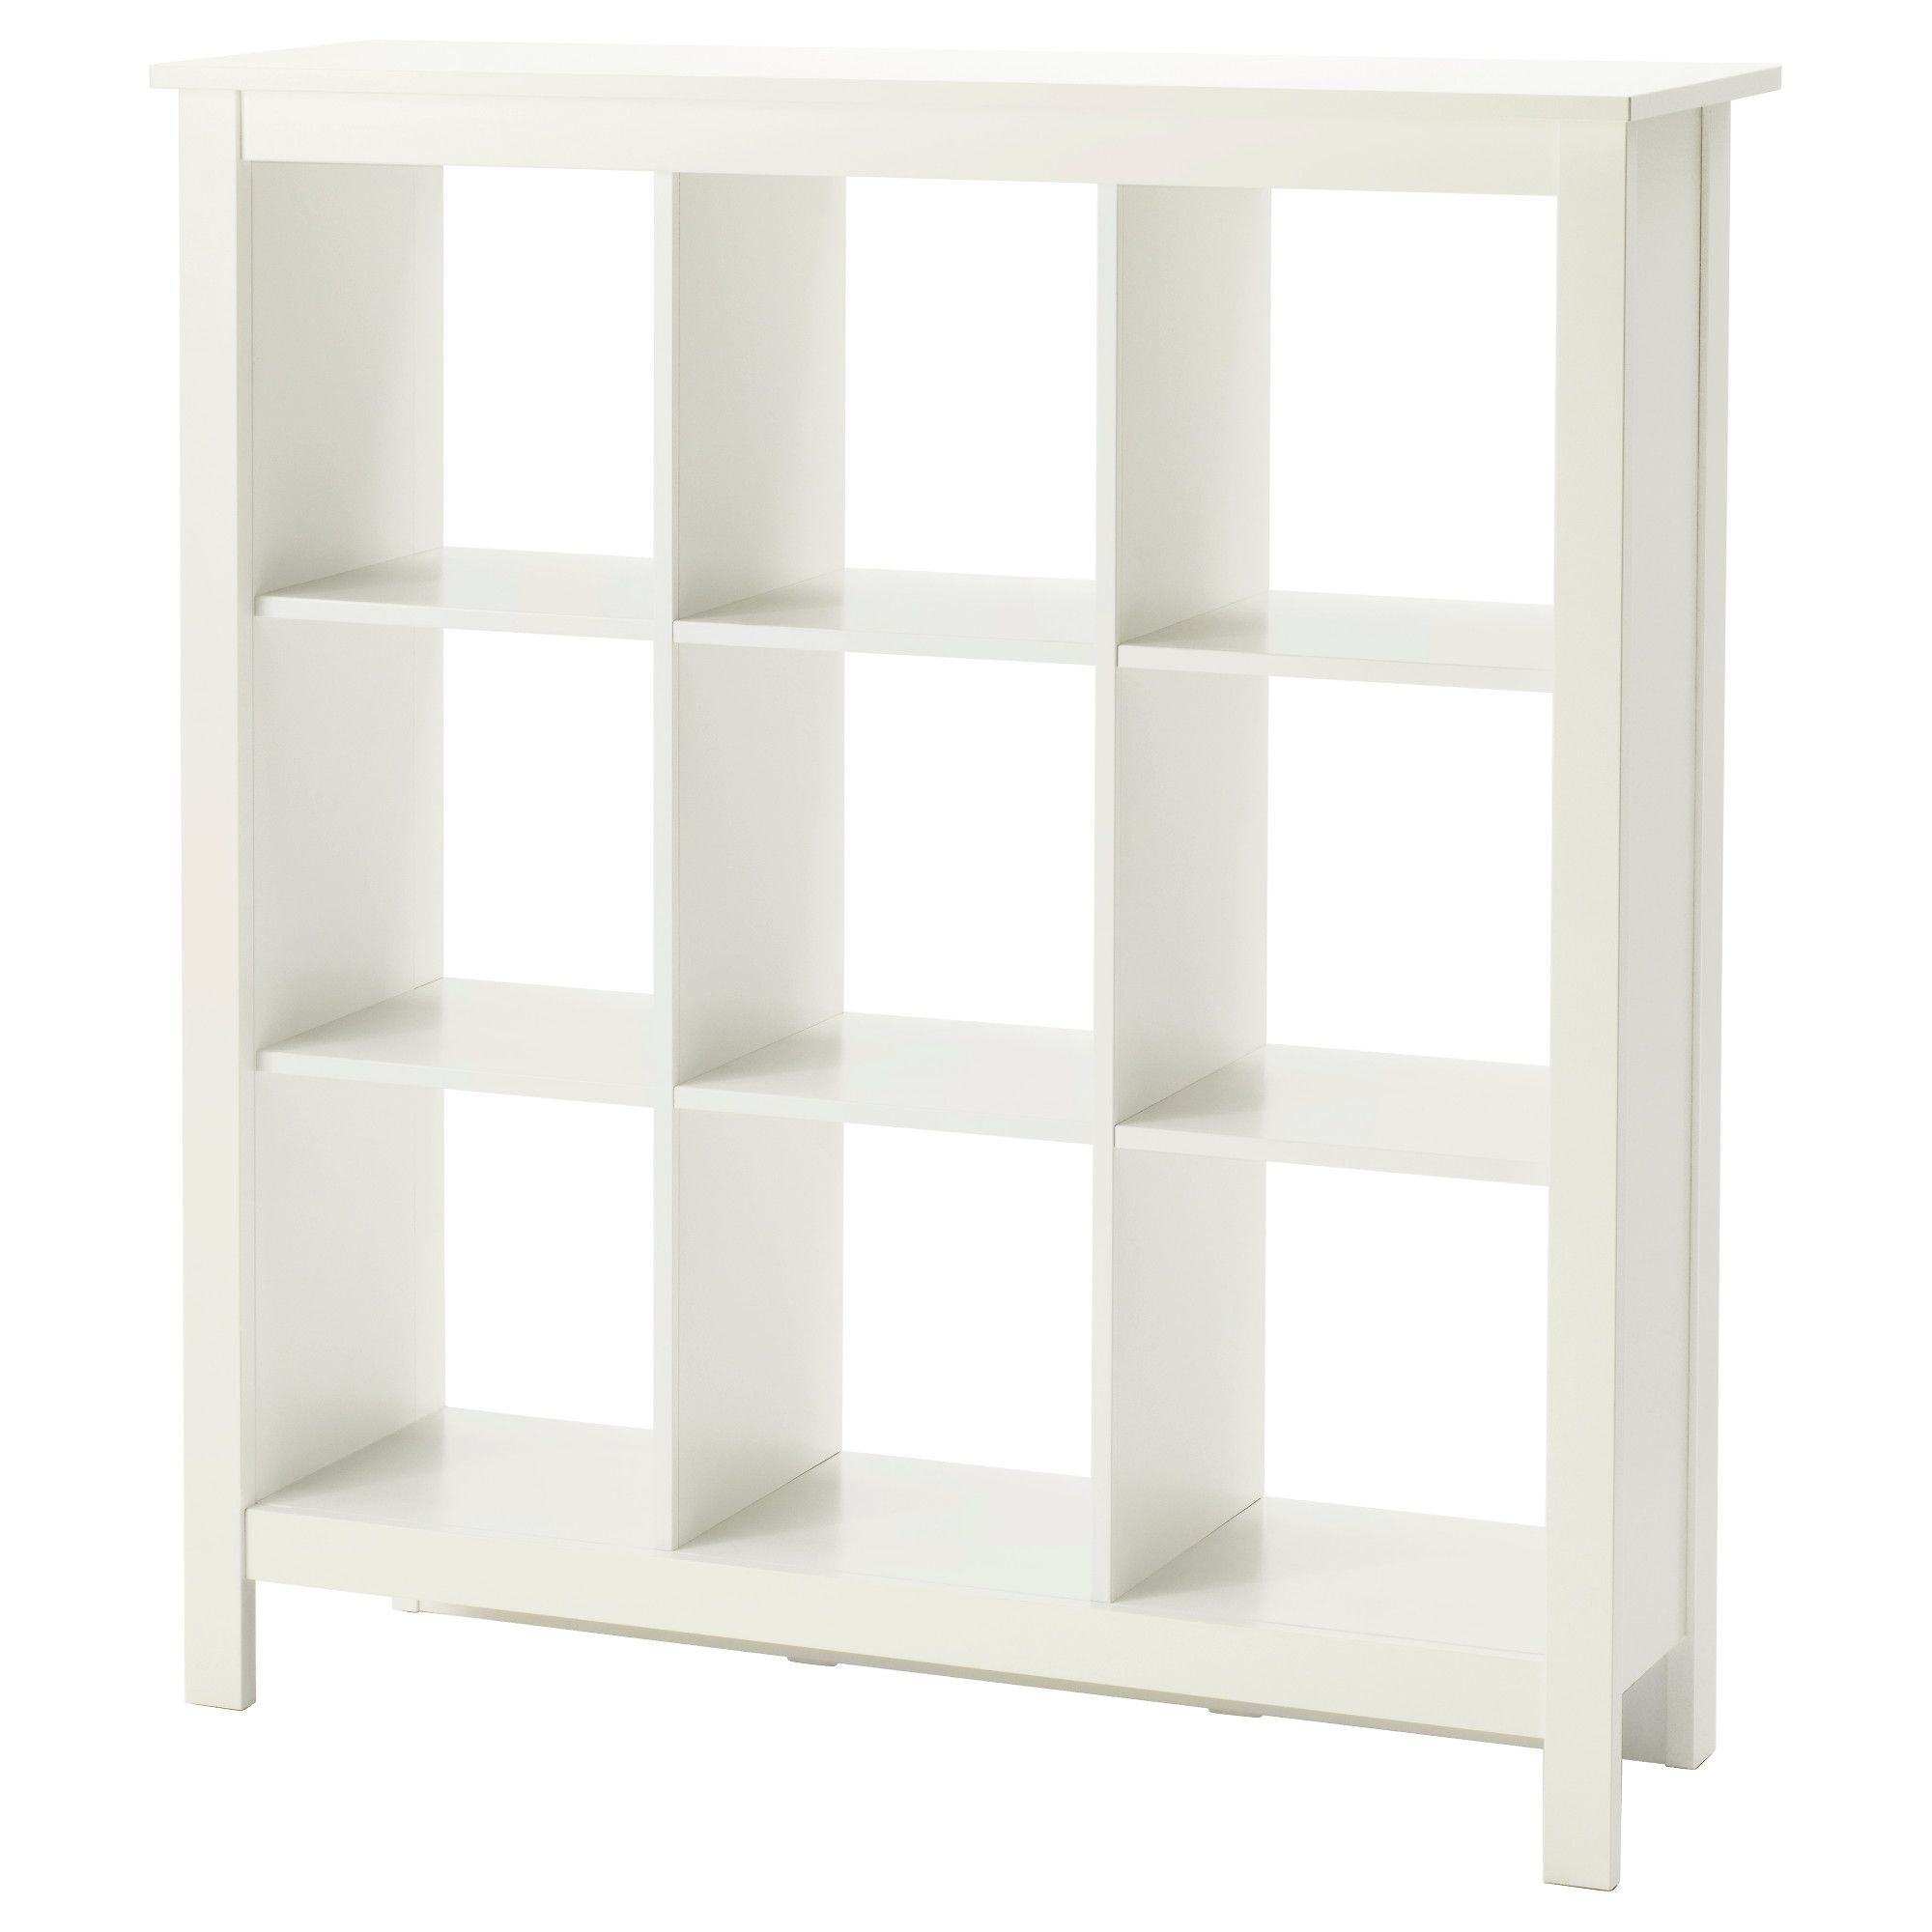 ikea - tomnÄs, shelf unit, white, , keep your favorite items visible